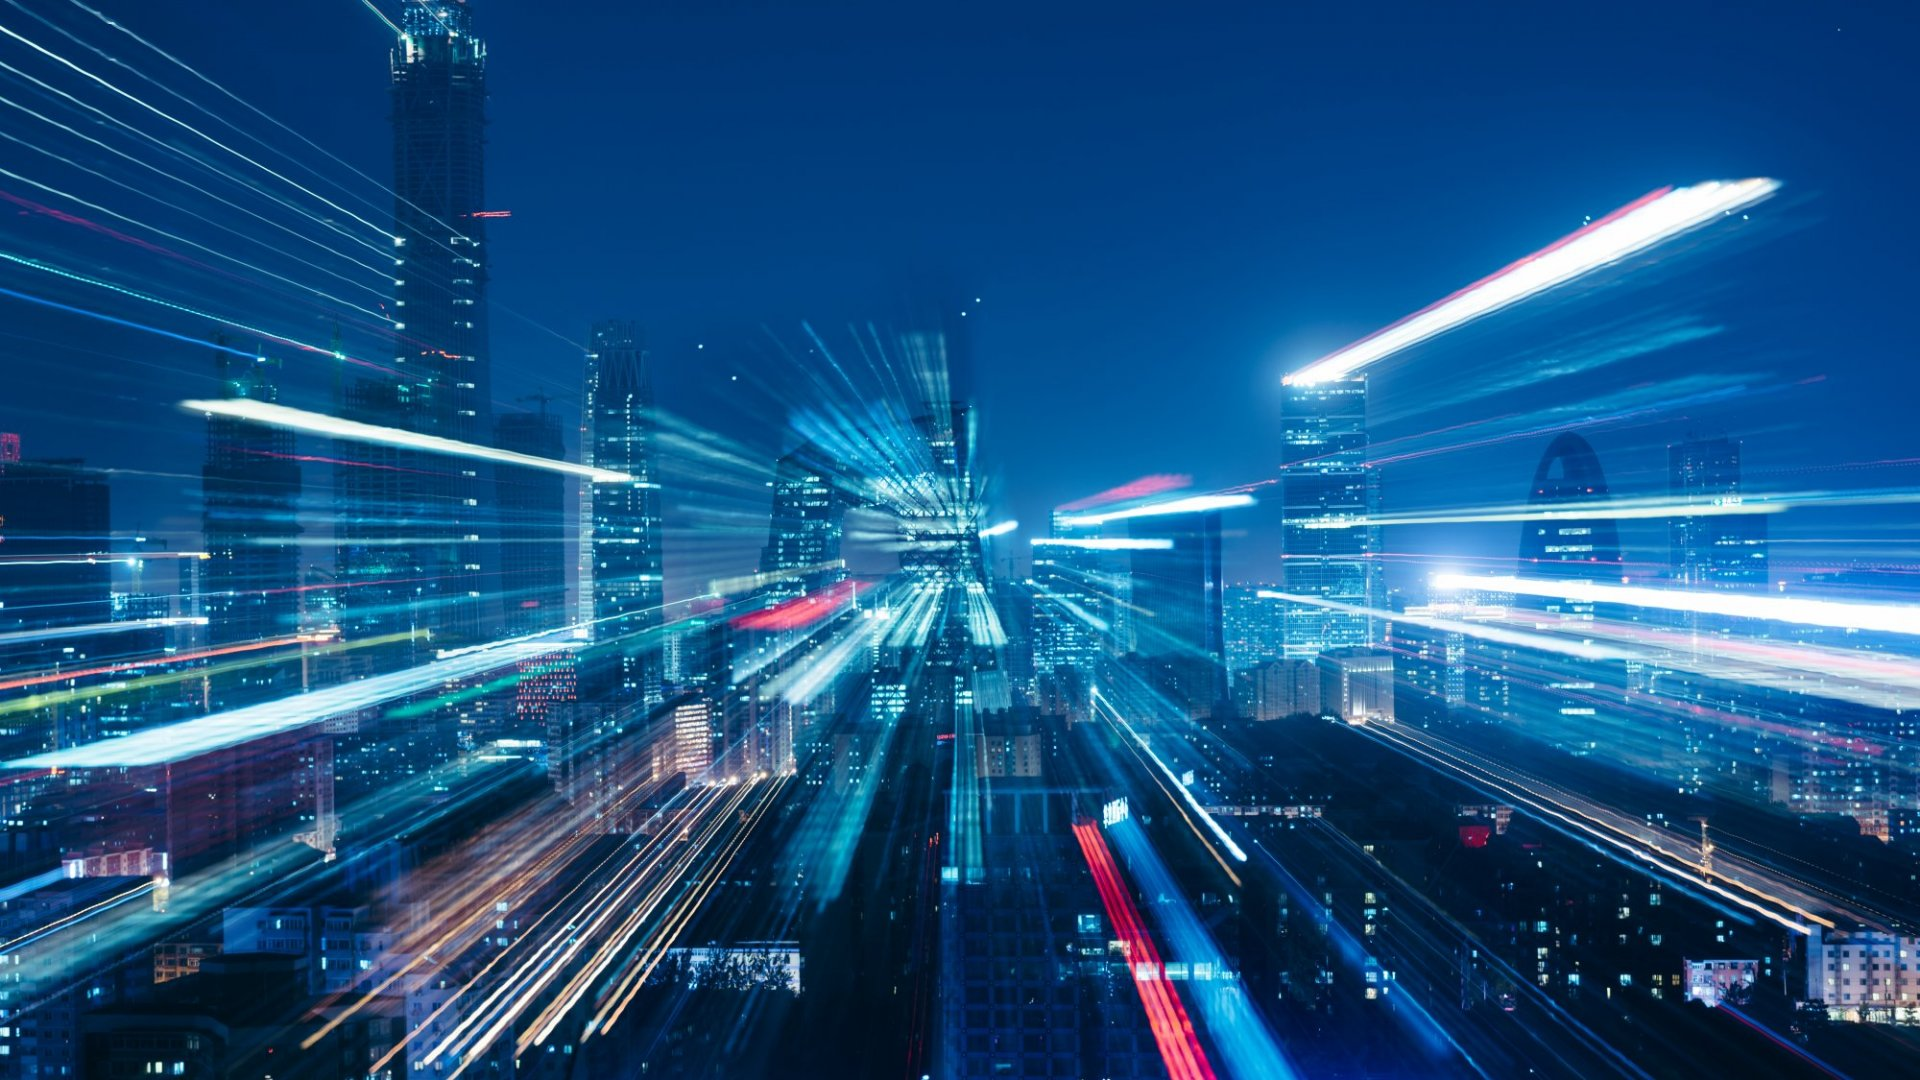 4 Megatrends Expected to Change Everything by 2050